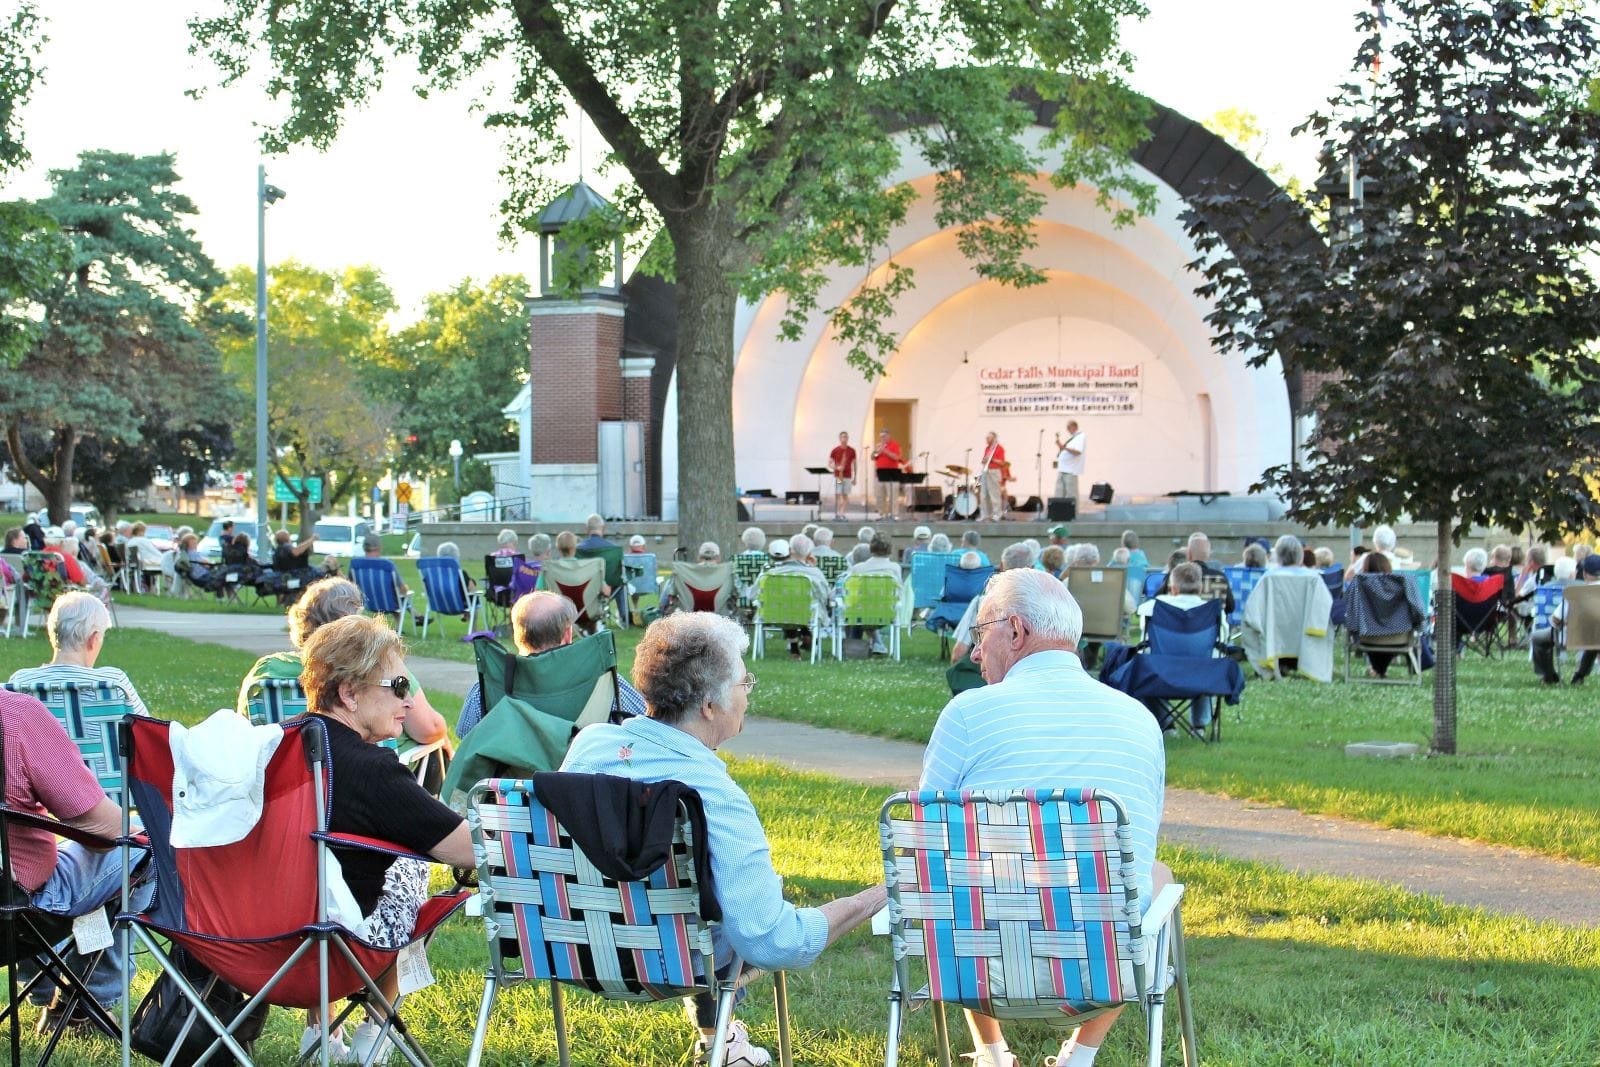 Cedar Falls Municipal Band concerts are Tuesday evenings in June and July at Overman Park